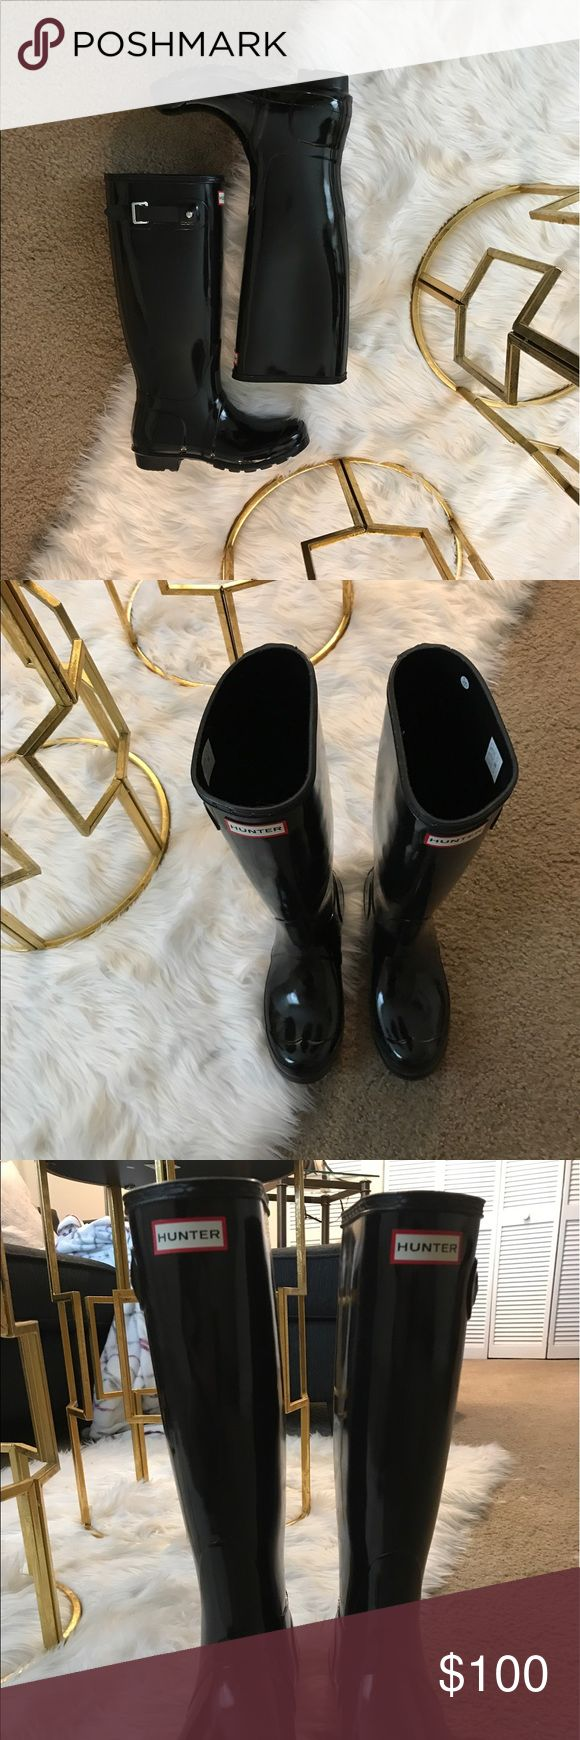 Black Tall Hunter Rain Boots Size 6 Perfect condition rain boots 😊☔️ only worn one time! Black, size women's 6!! Selling for $100 OBO Hunter Boots Shoes Winter & Rain Boots